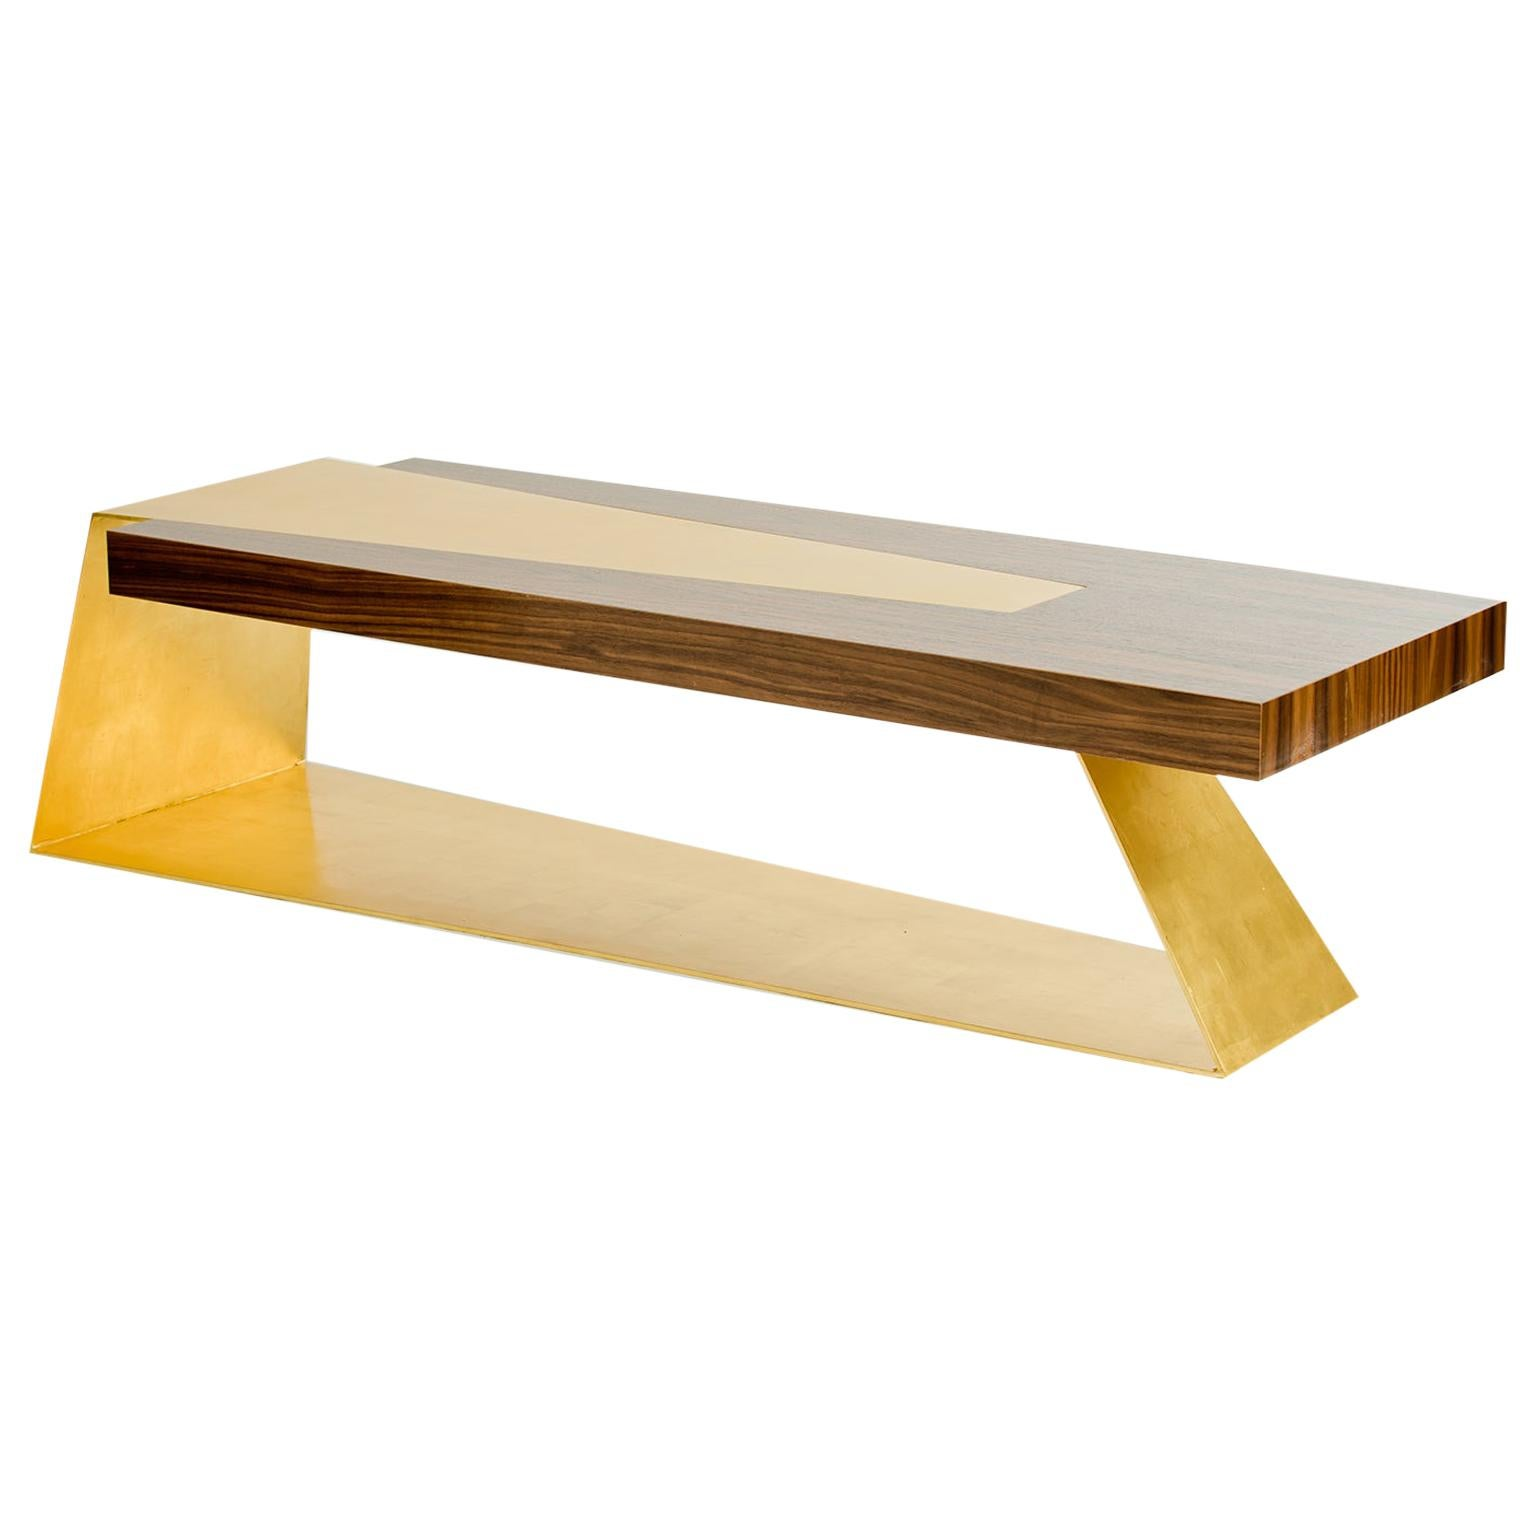 Bowery Bench or Coffee Table, Walnut and Gold Leaf, by Dean and Dahl